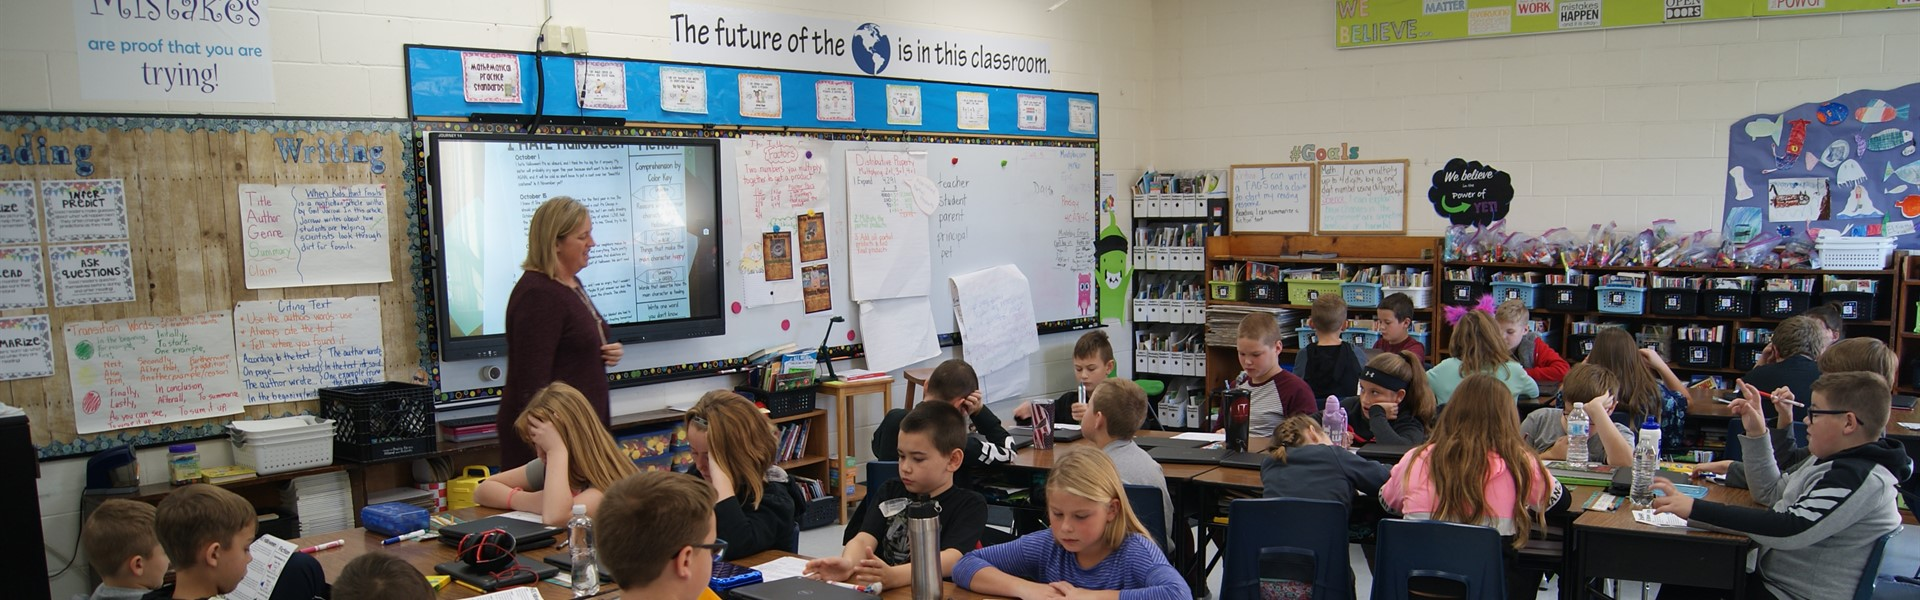 students at desks and teacher in front of room in a 4th grade classroom